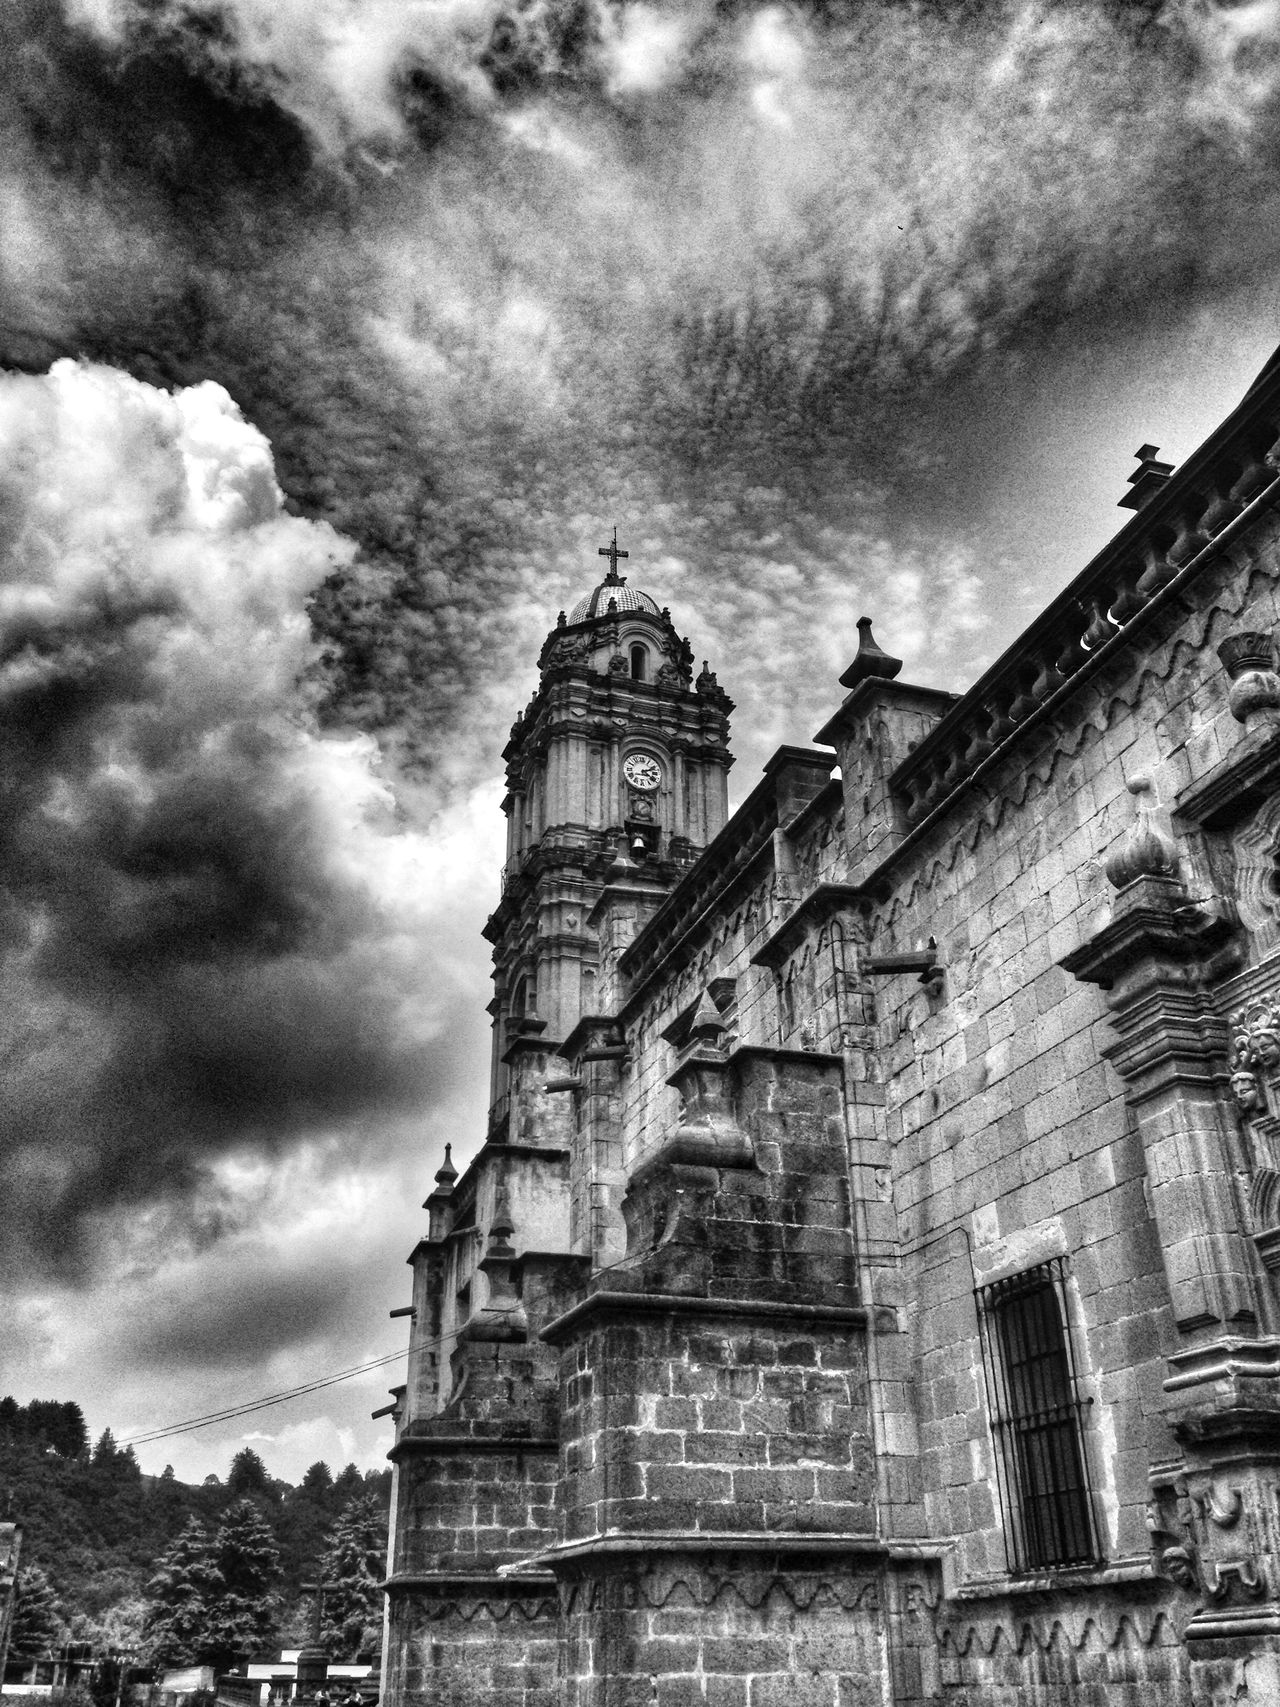 Architecture Architecture_bw Blackandwhite Landscape Clouds And Sky Blackandwhite Photography Tlalpujahua Black & White Black And White Church